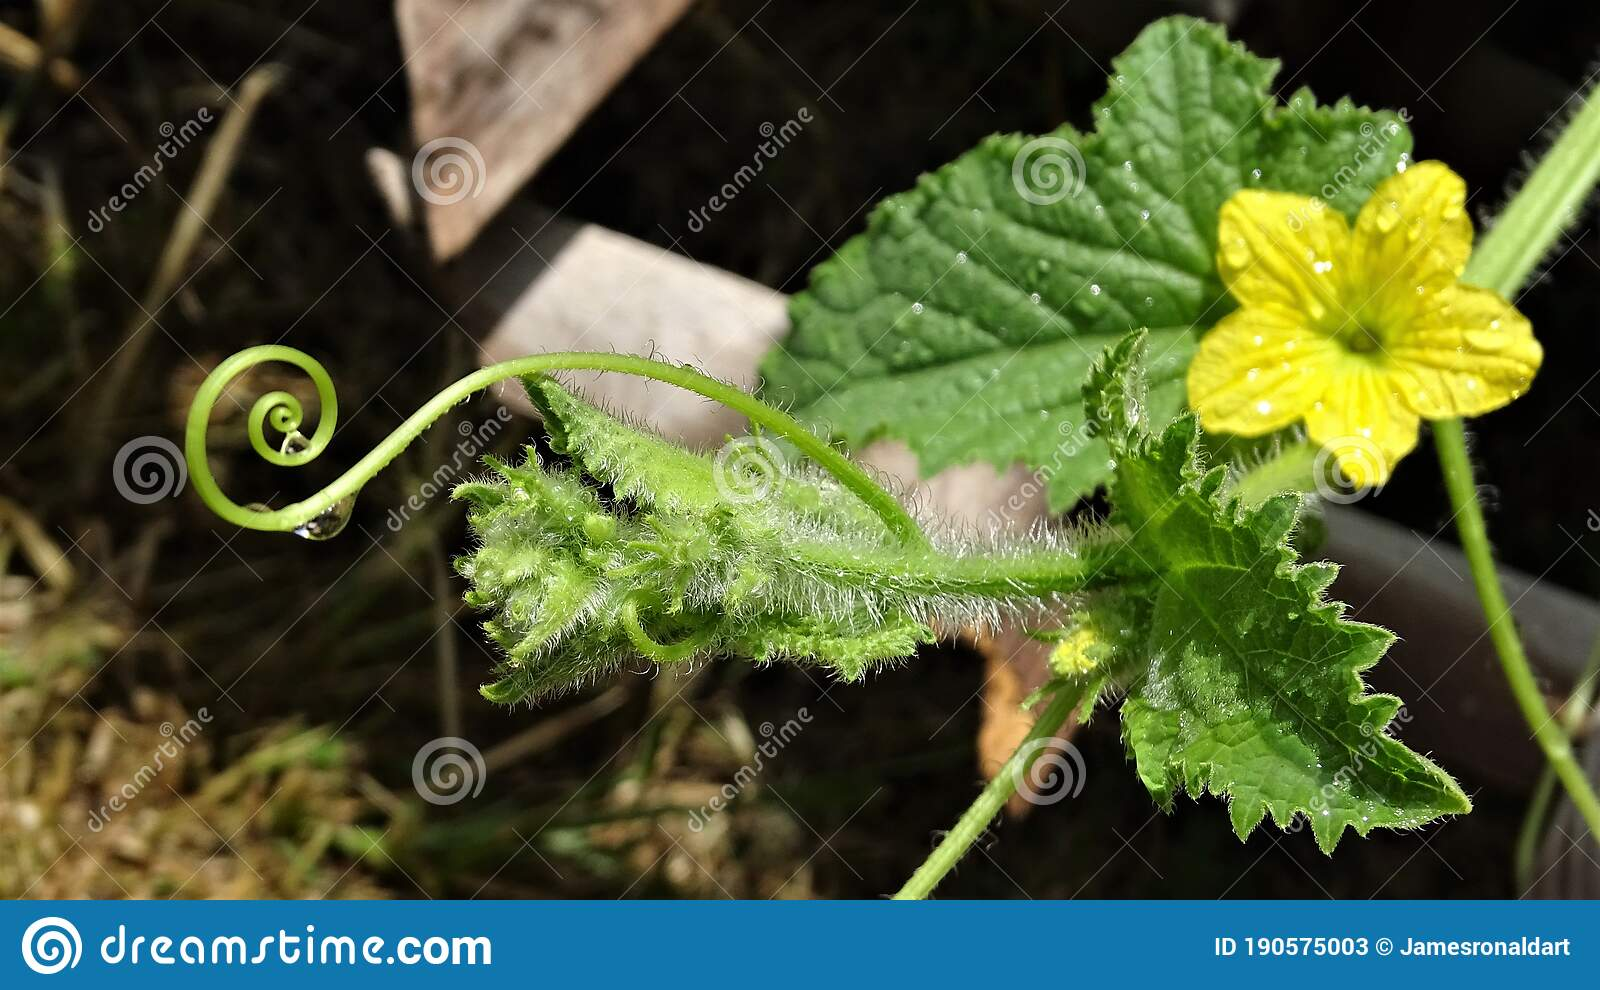 236 Cantaloupe Vine Photos Free Royalty Free Stock Photos From Dreamstime Cantaloupe vine is a synonym for cantaloup vine. dreamstime com